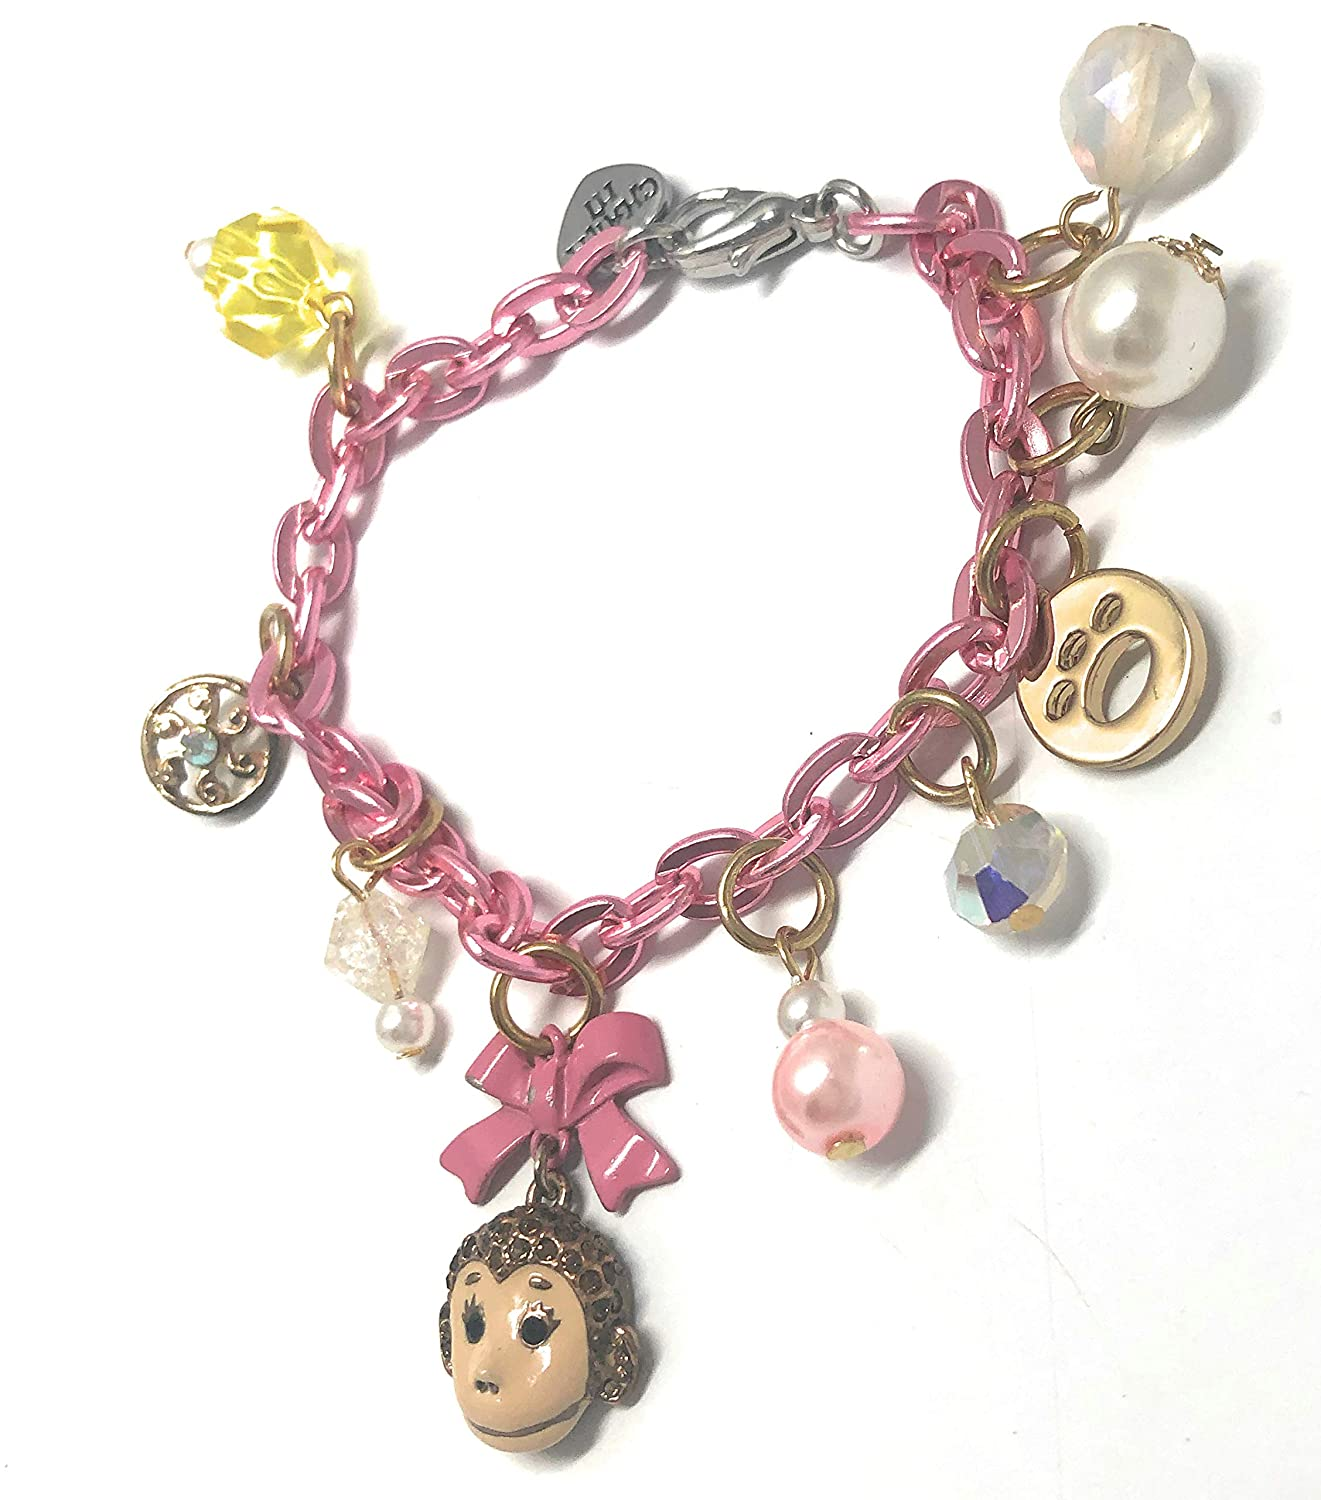 Nicevsnaughty Monkey Pink Bow Princess Charm Kawaii Japan Bracelet